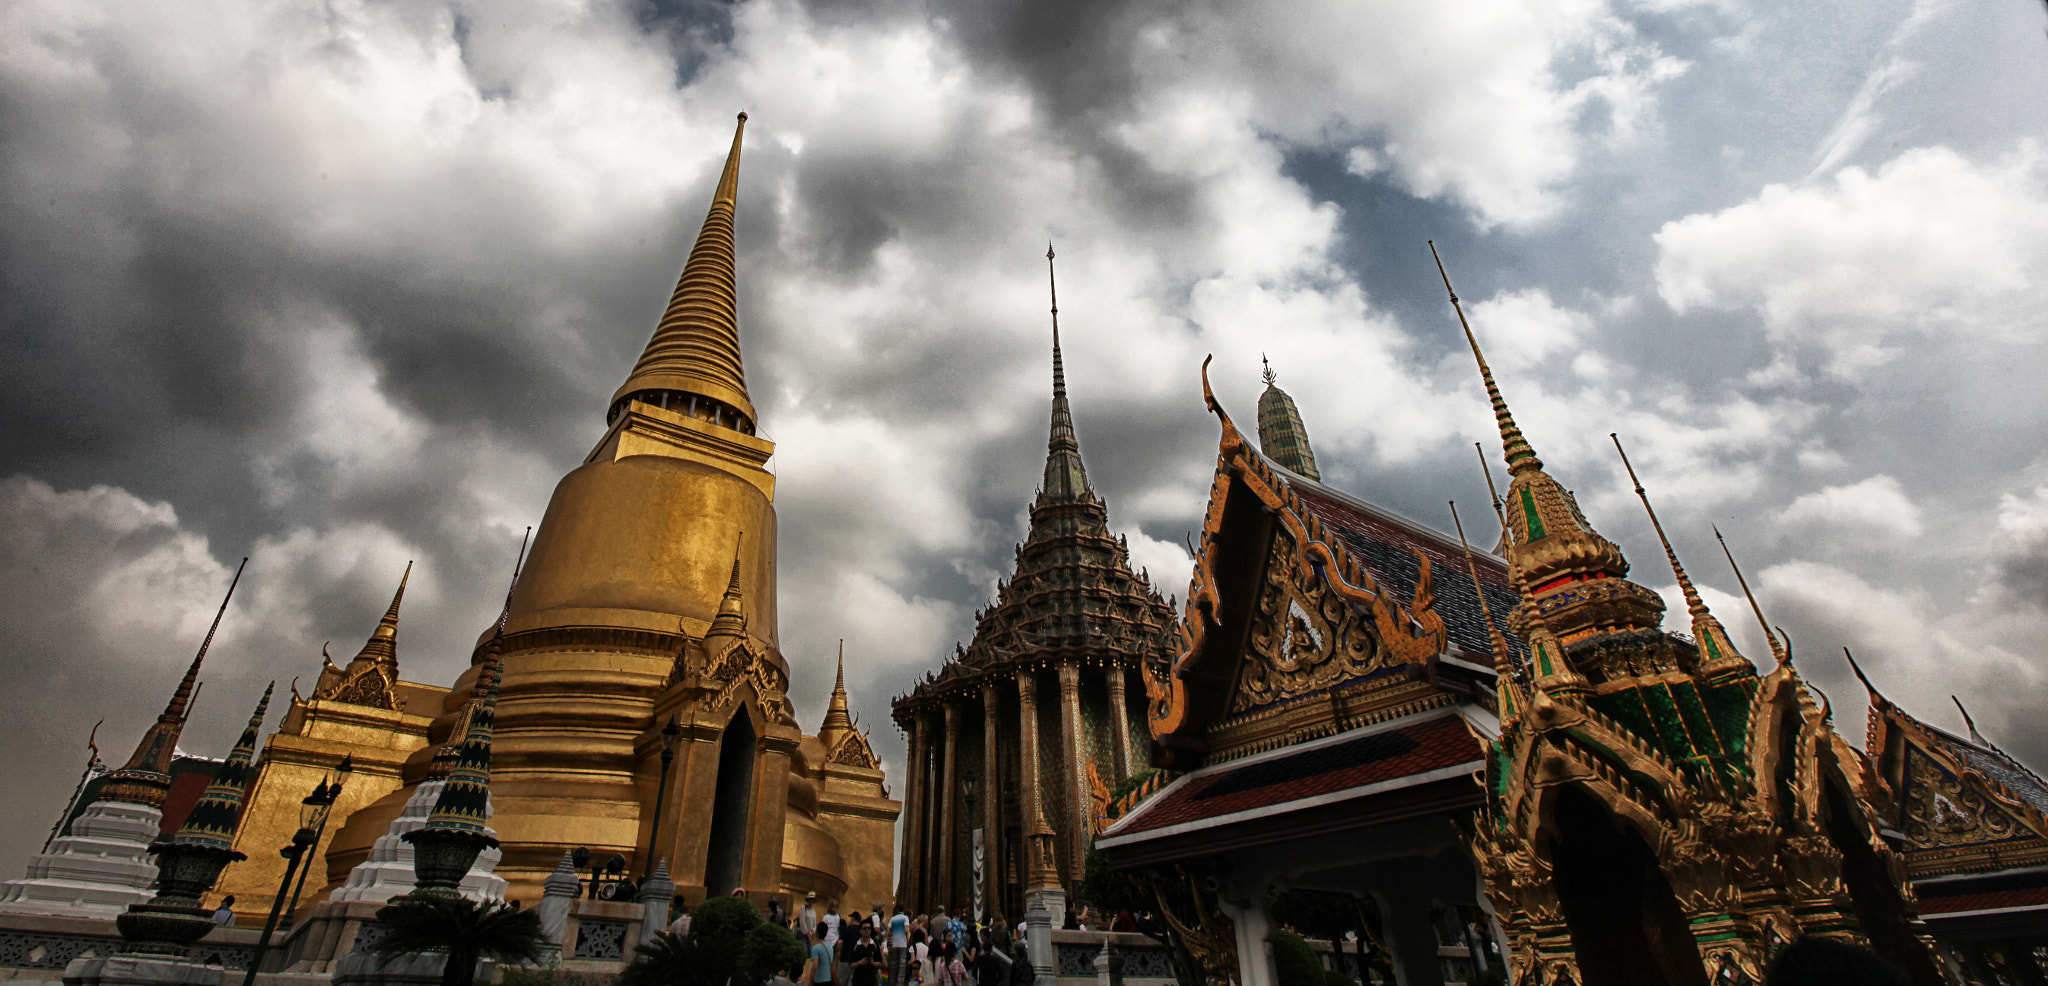 Photograph Thai Temples by David Babayan on 500px